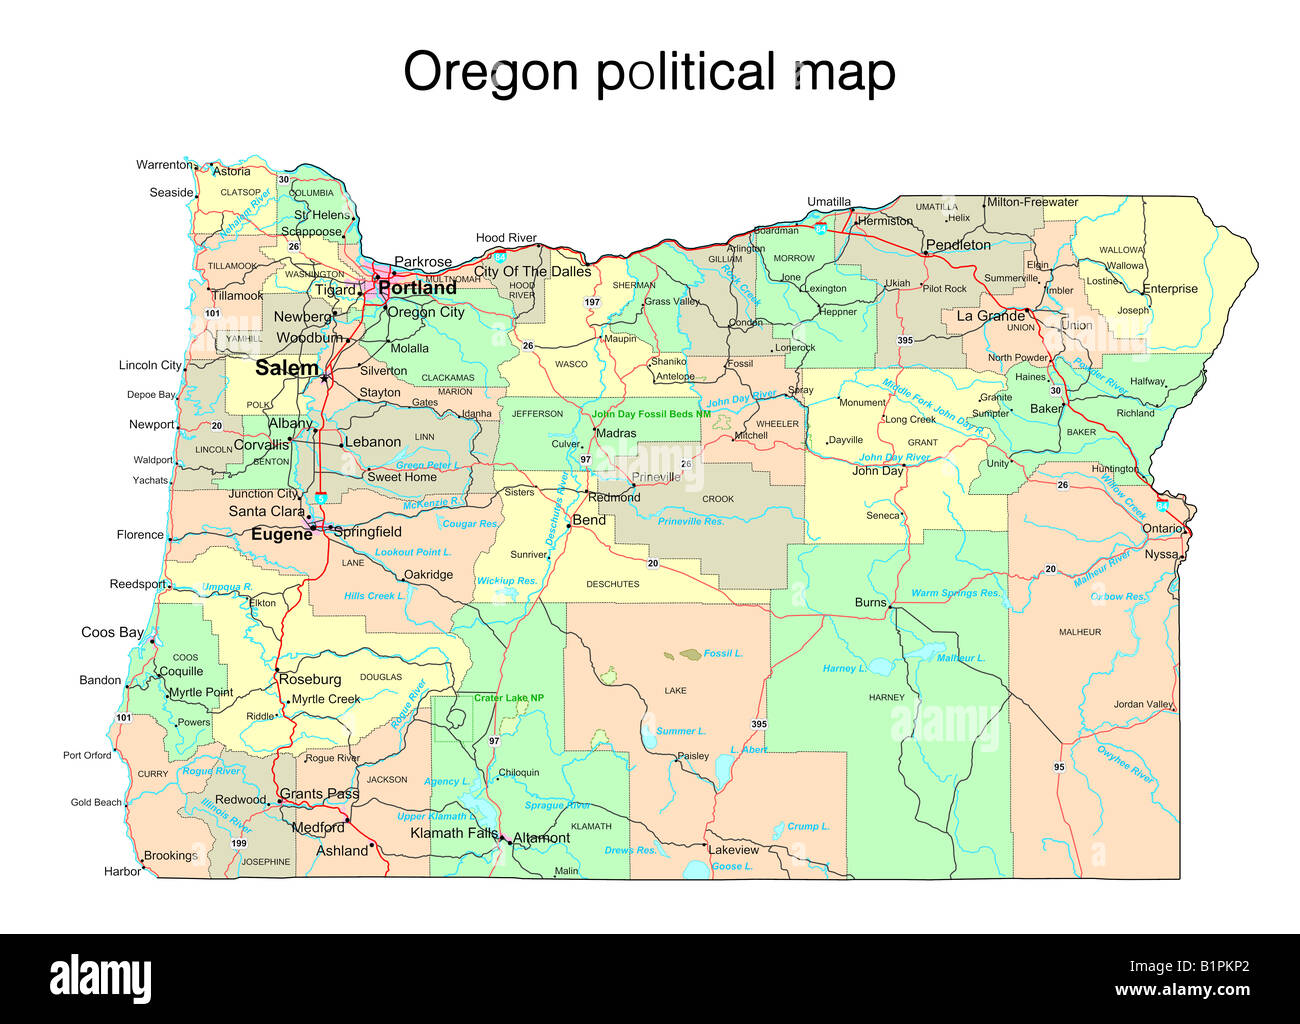 Oregon state political map Stock Photo: 18323482   Alamy